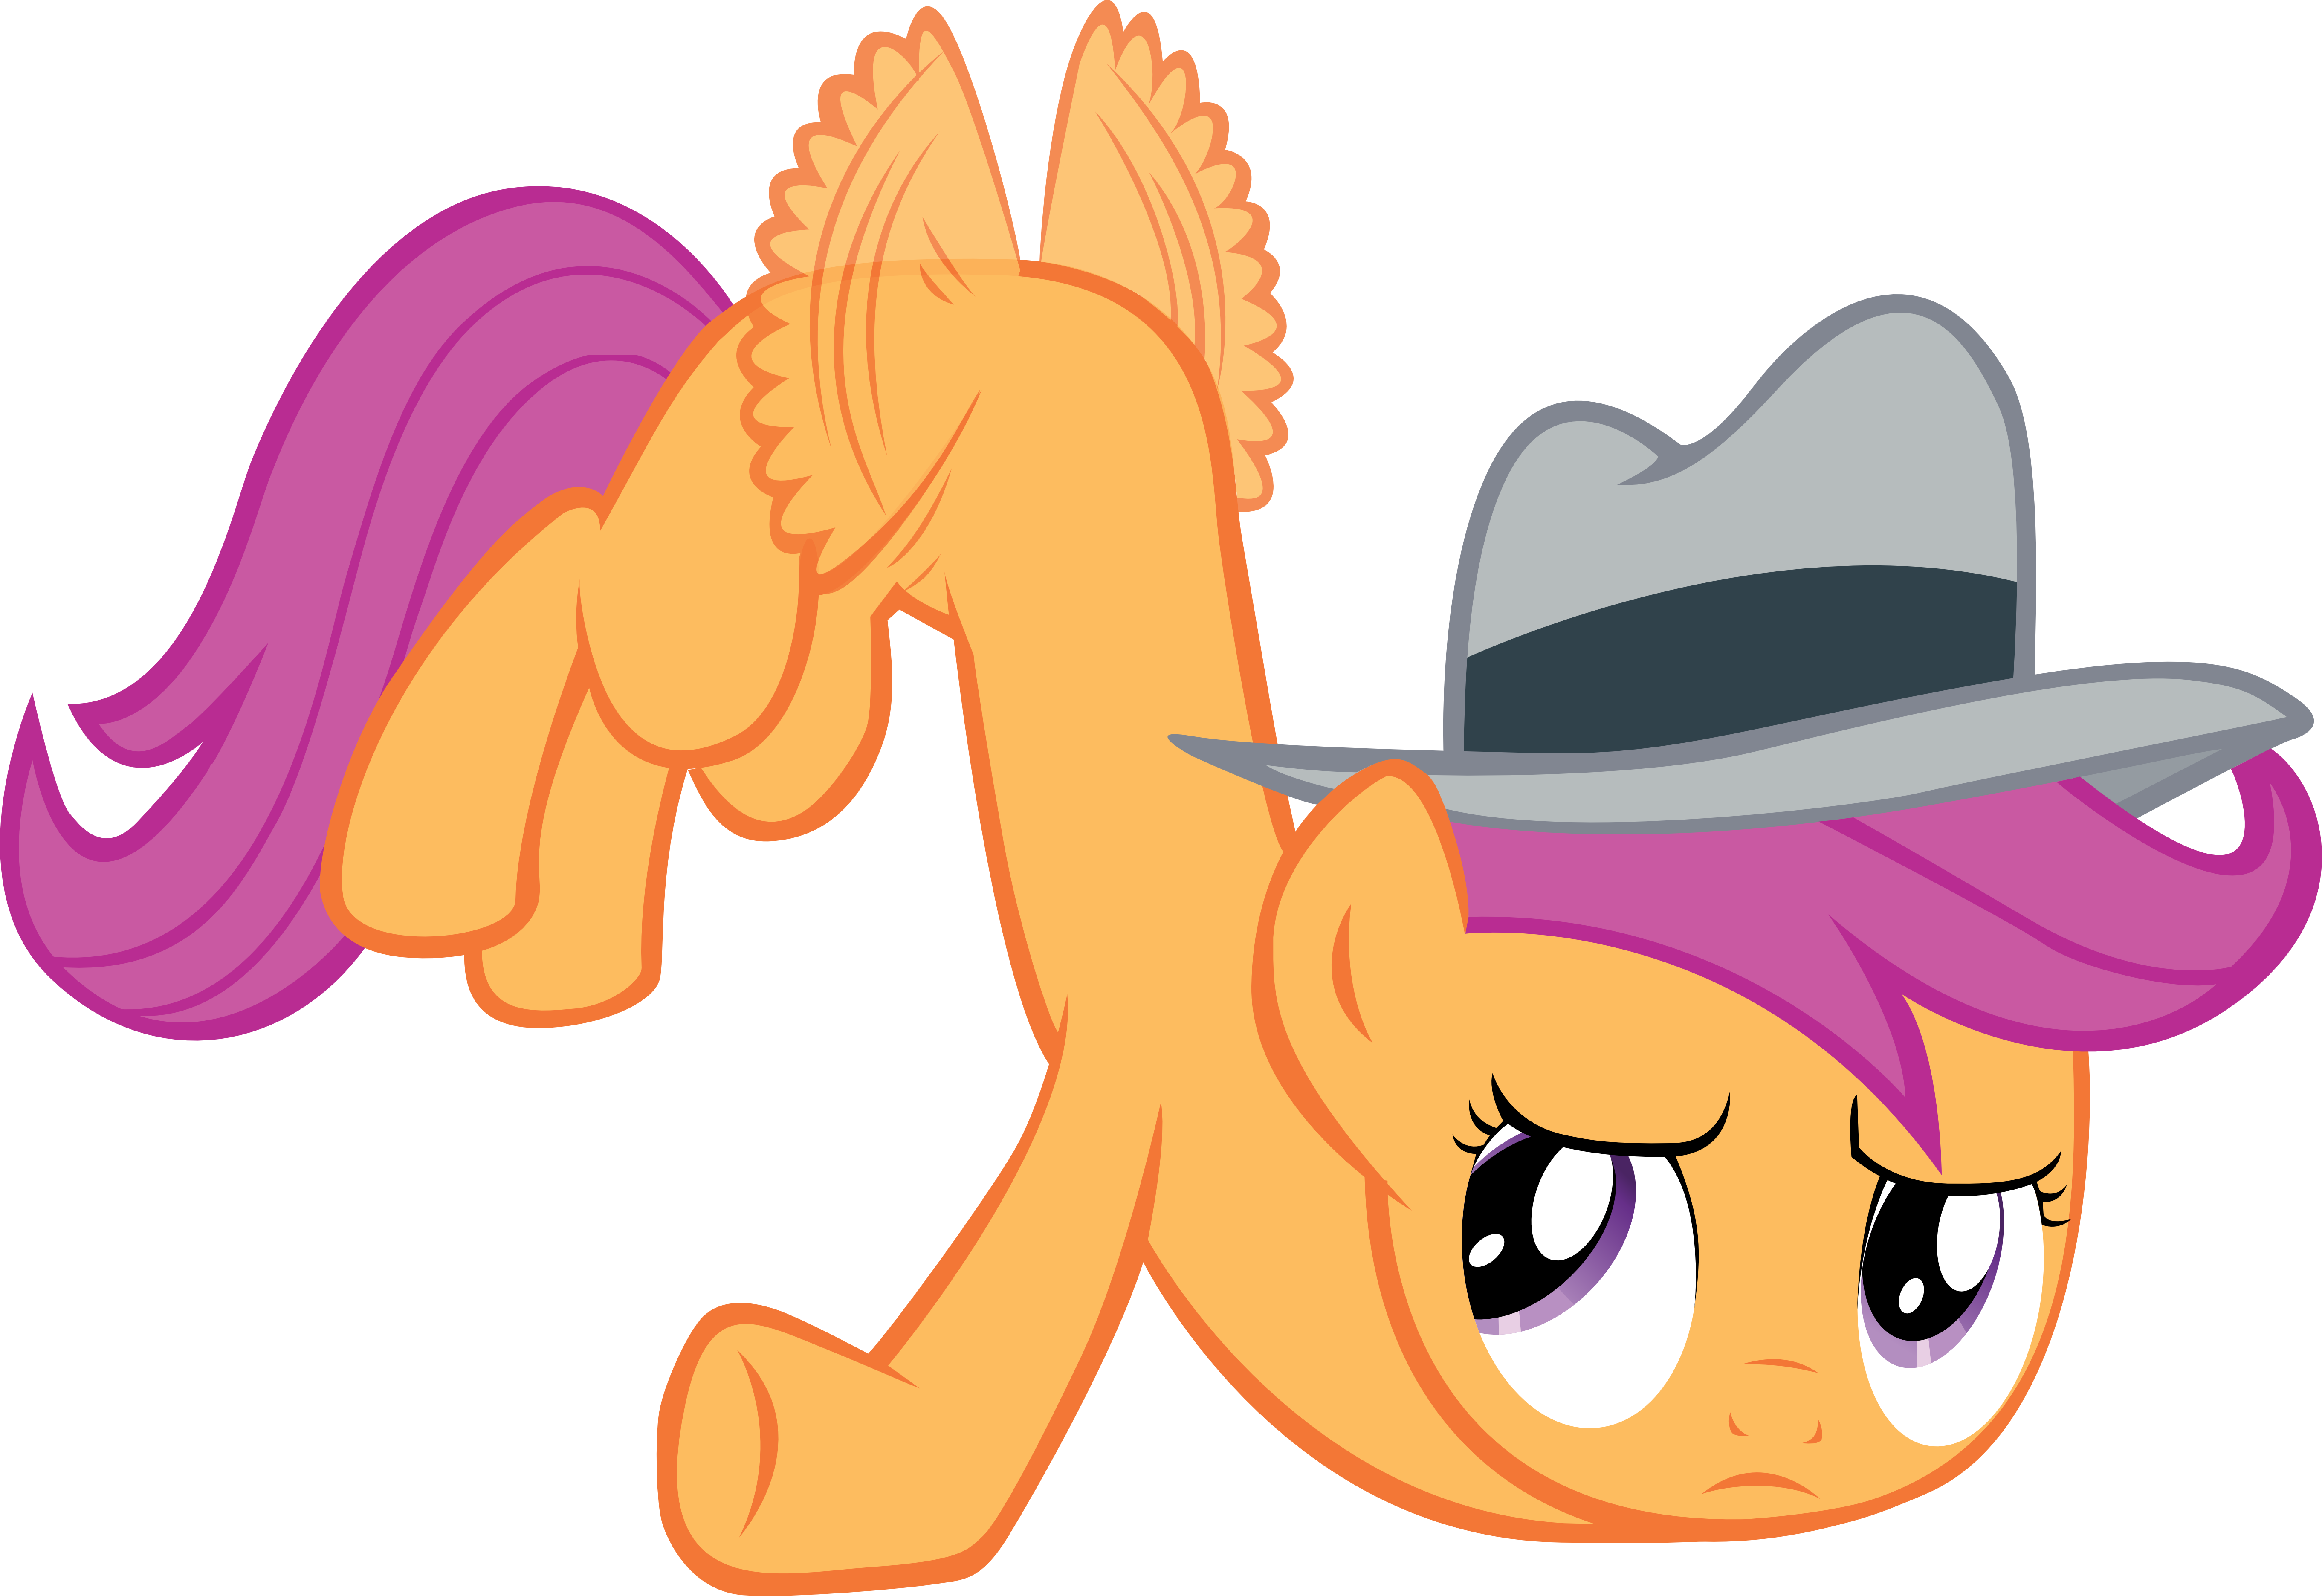 Scootaloo Can T Fly By Deadparrot22 On Deviantart Scootaloo can't fly yet, and she's not happy. deviantart